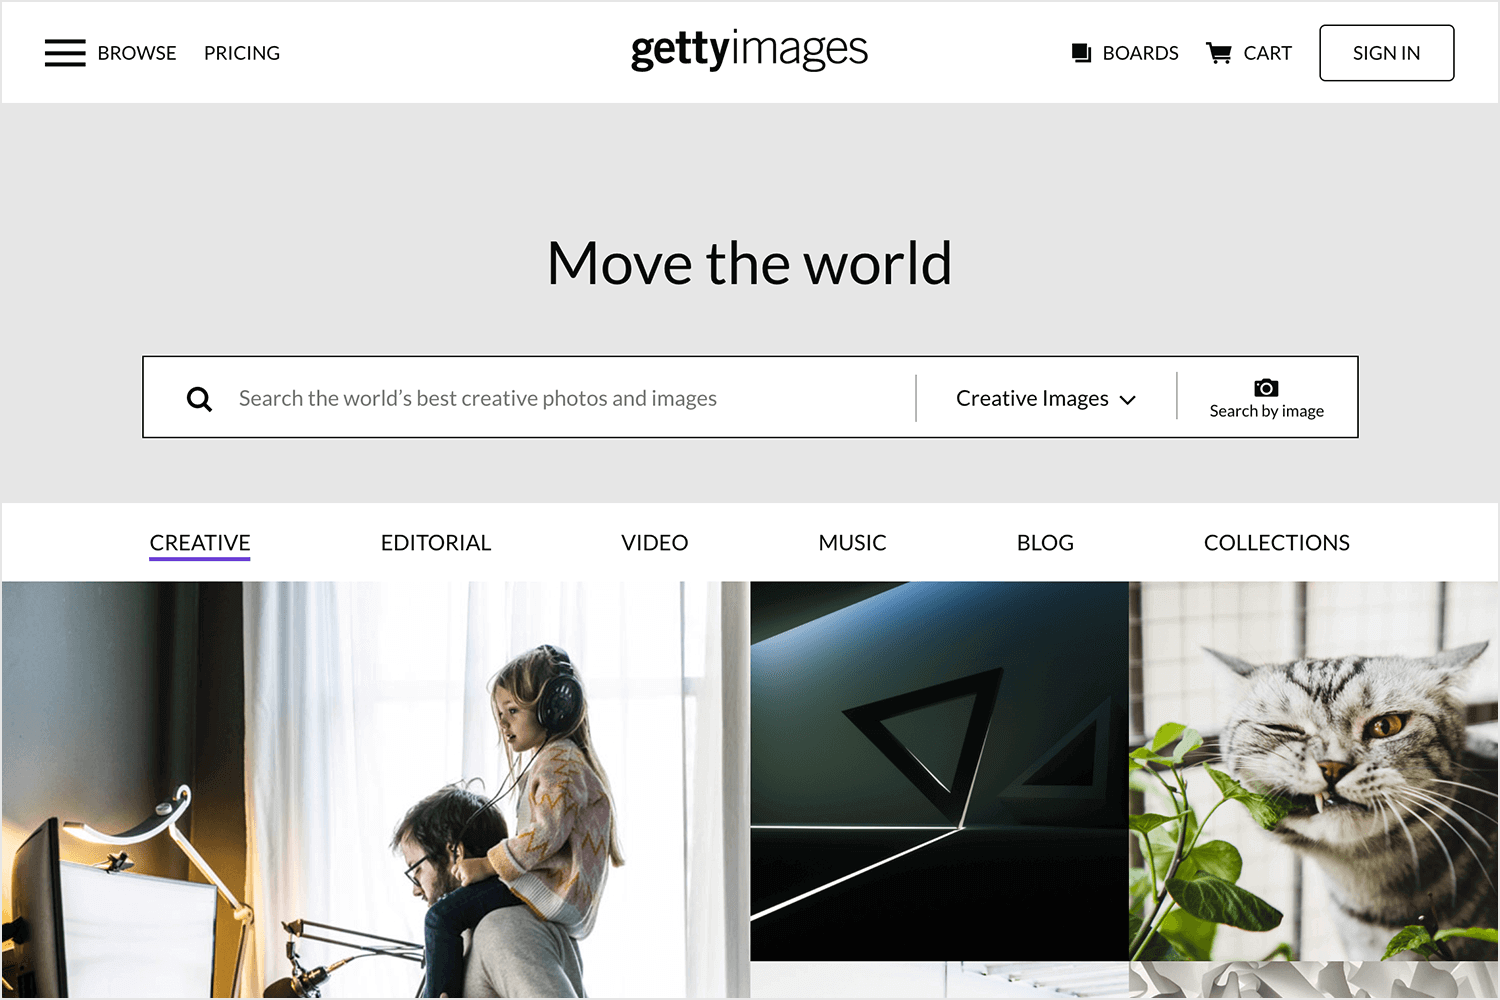 getty images as source of paid backgrounds